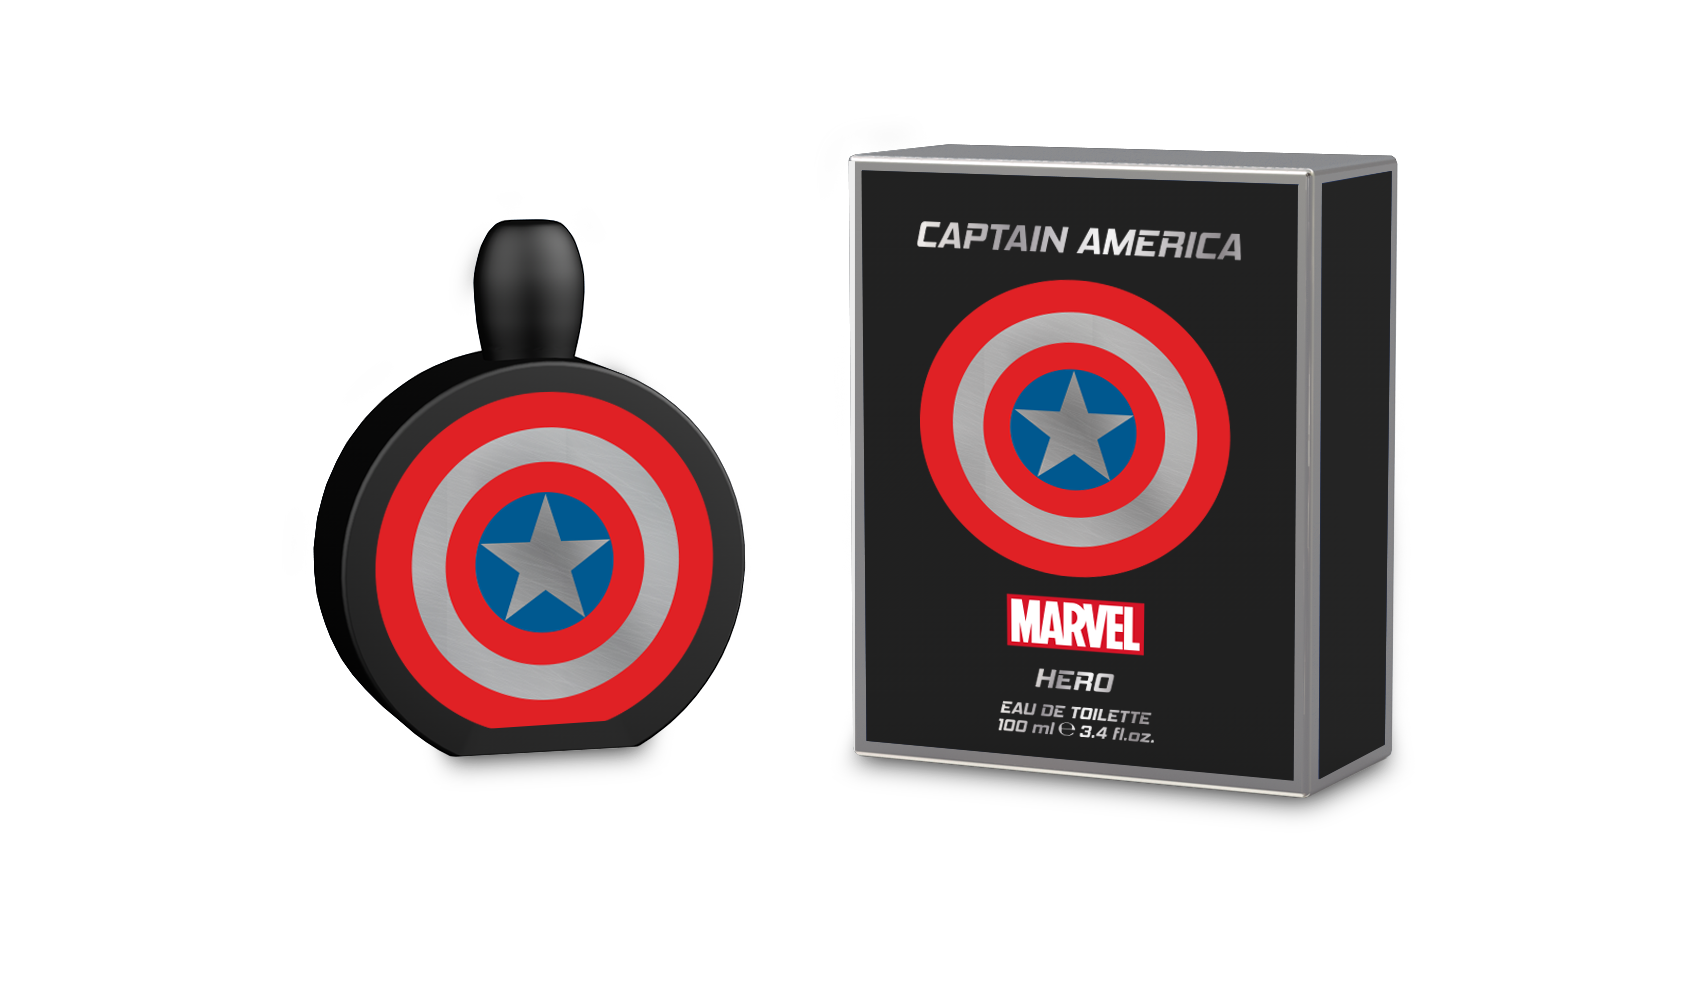 MARVEL CAPTAIN AMERICA HERO 3.4 EAU DE TOILETTE SPRAY